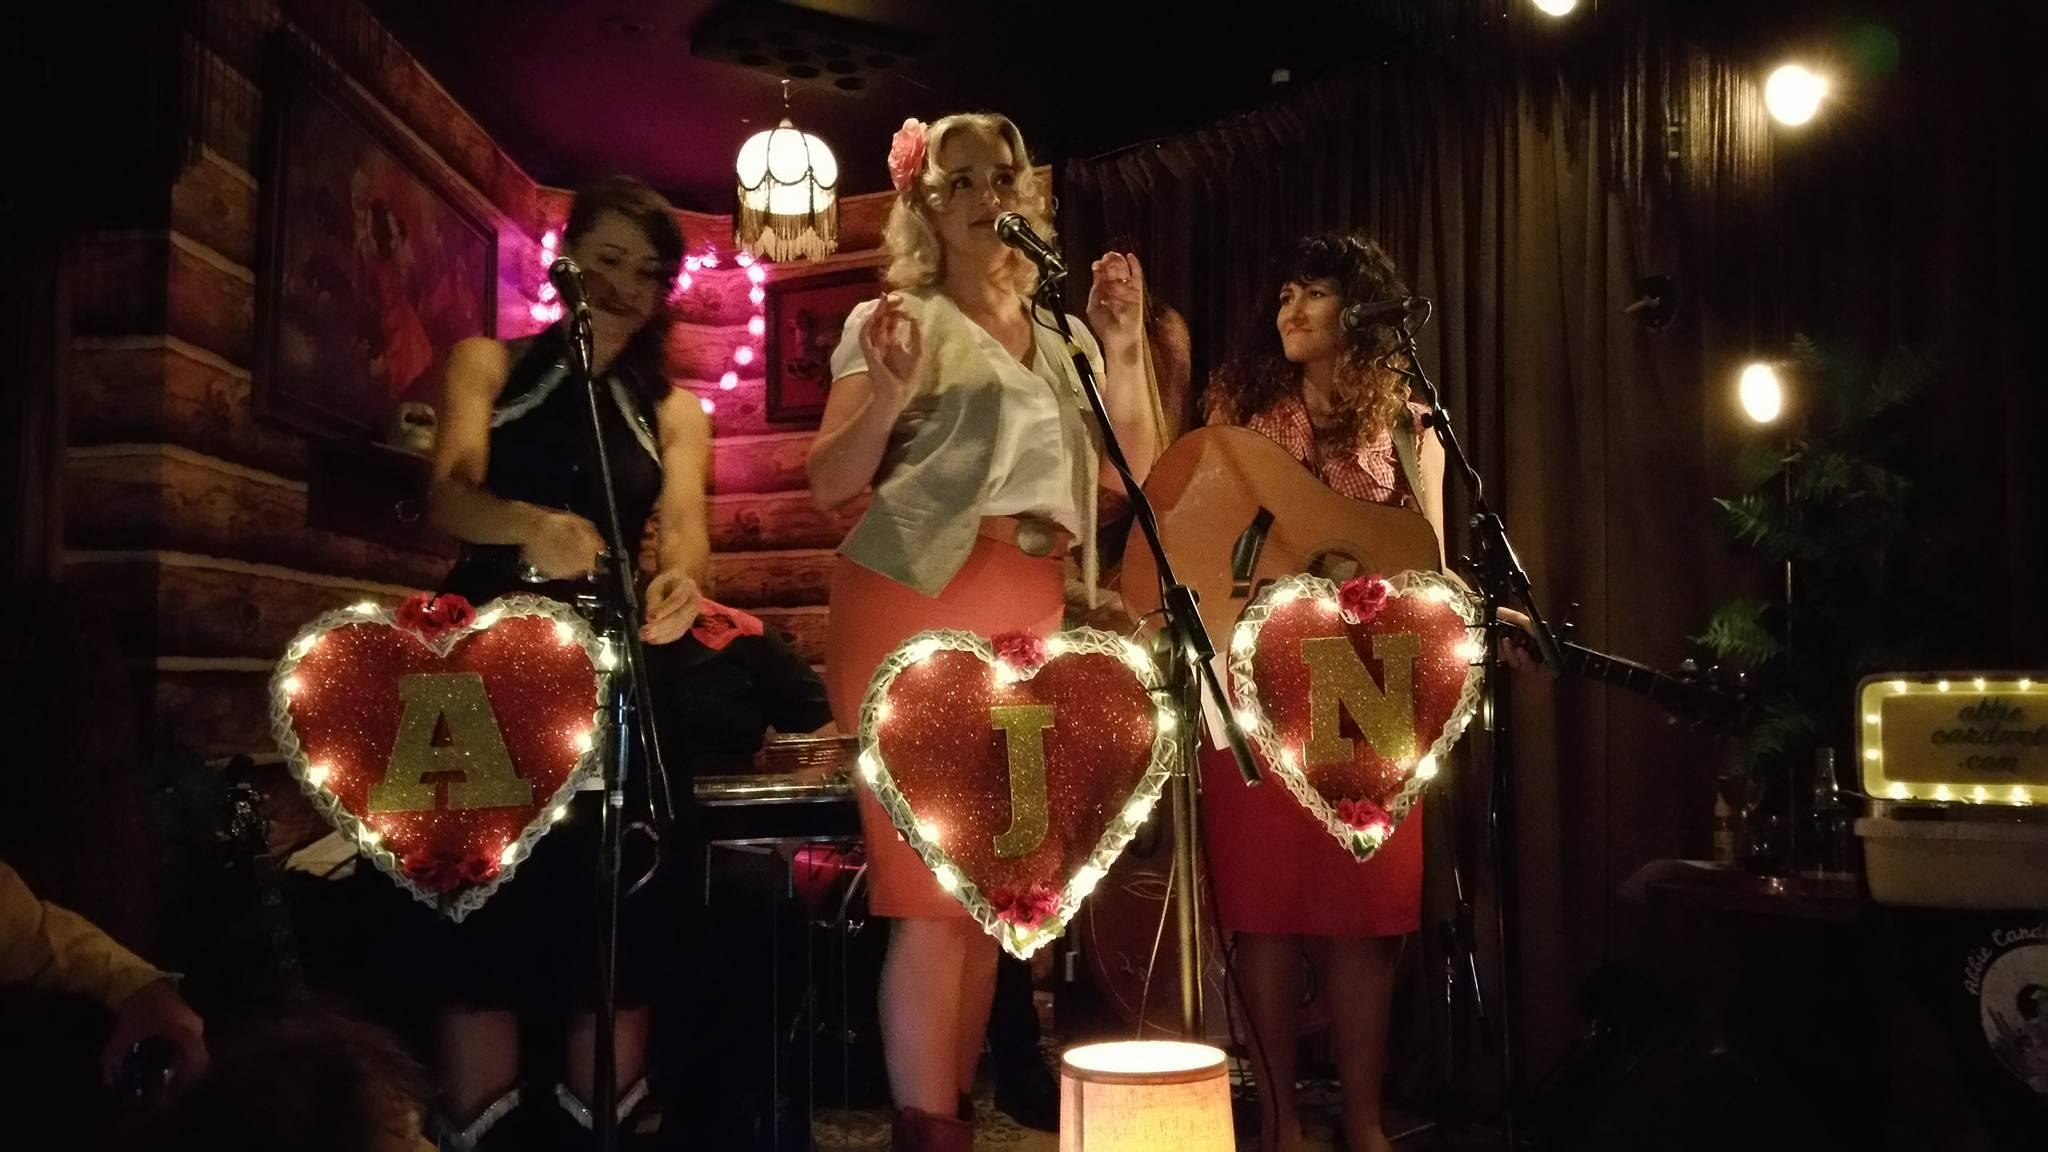 Abbie Cardwell, Jen Mize & Nicole Brophy at The Junk Bar in three part harmony for the Valentines Honkytonkin Heartbreaker Show 2016